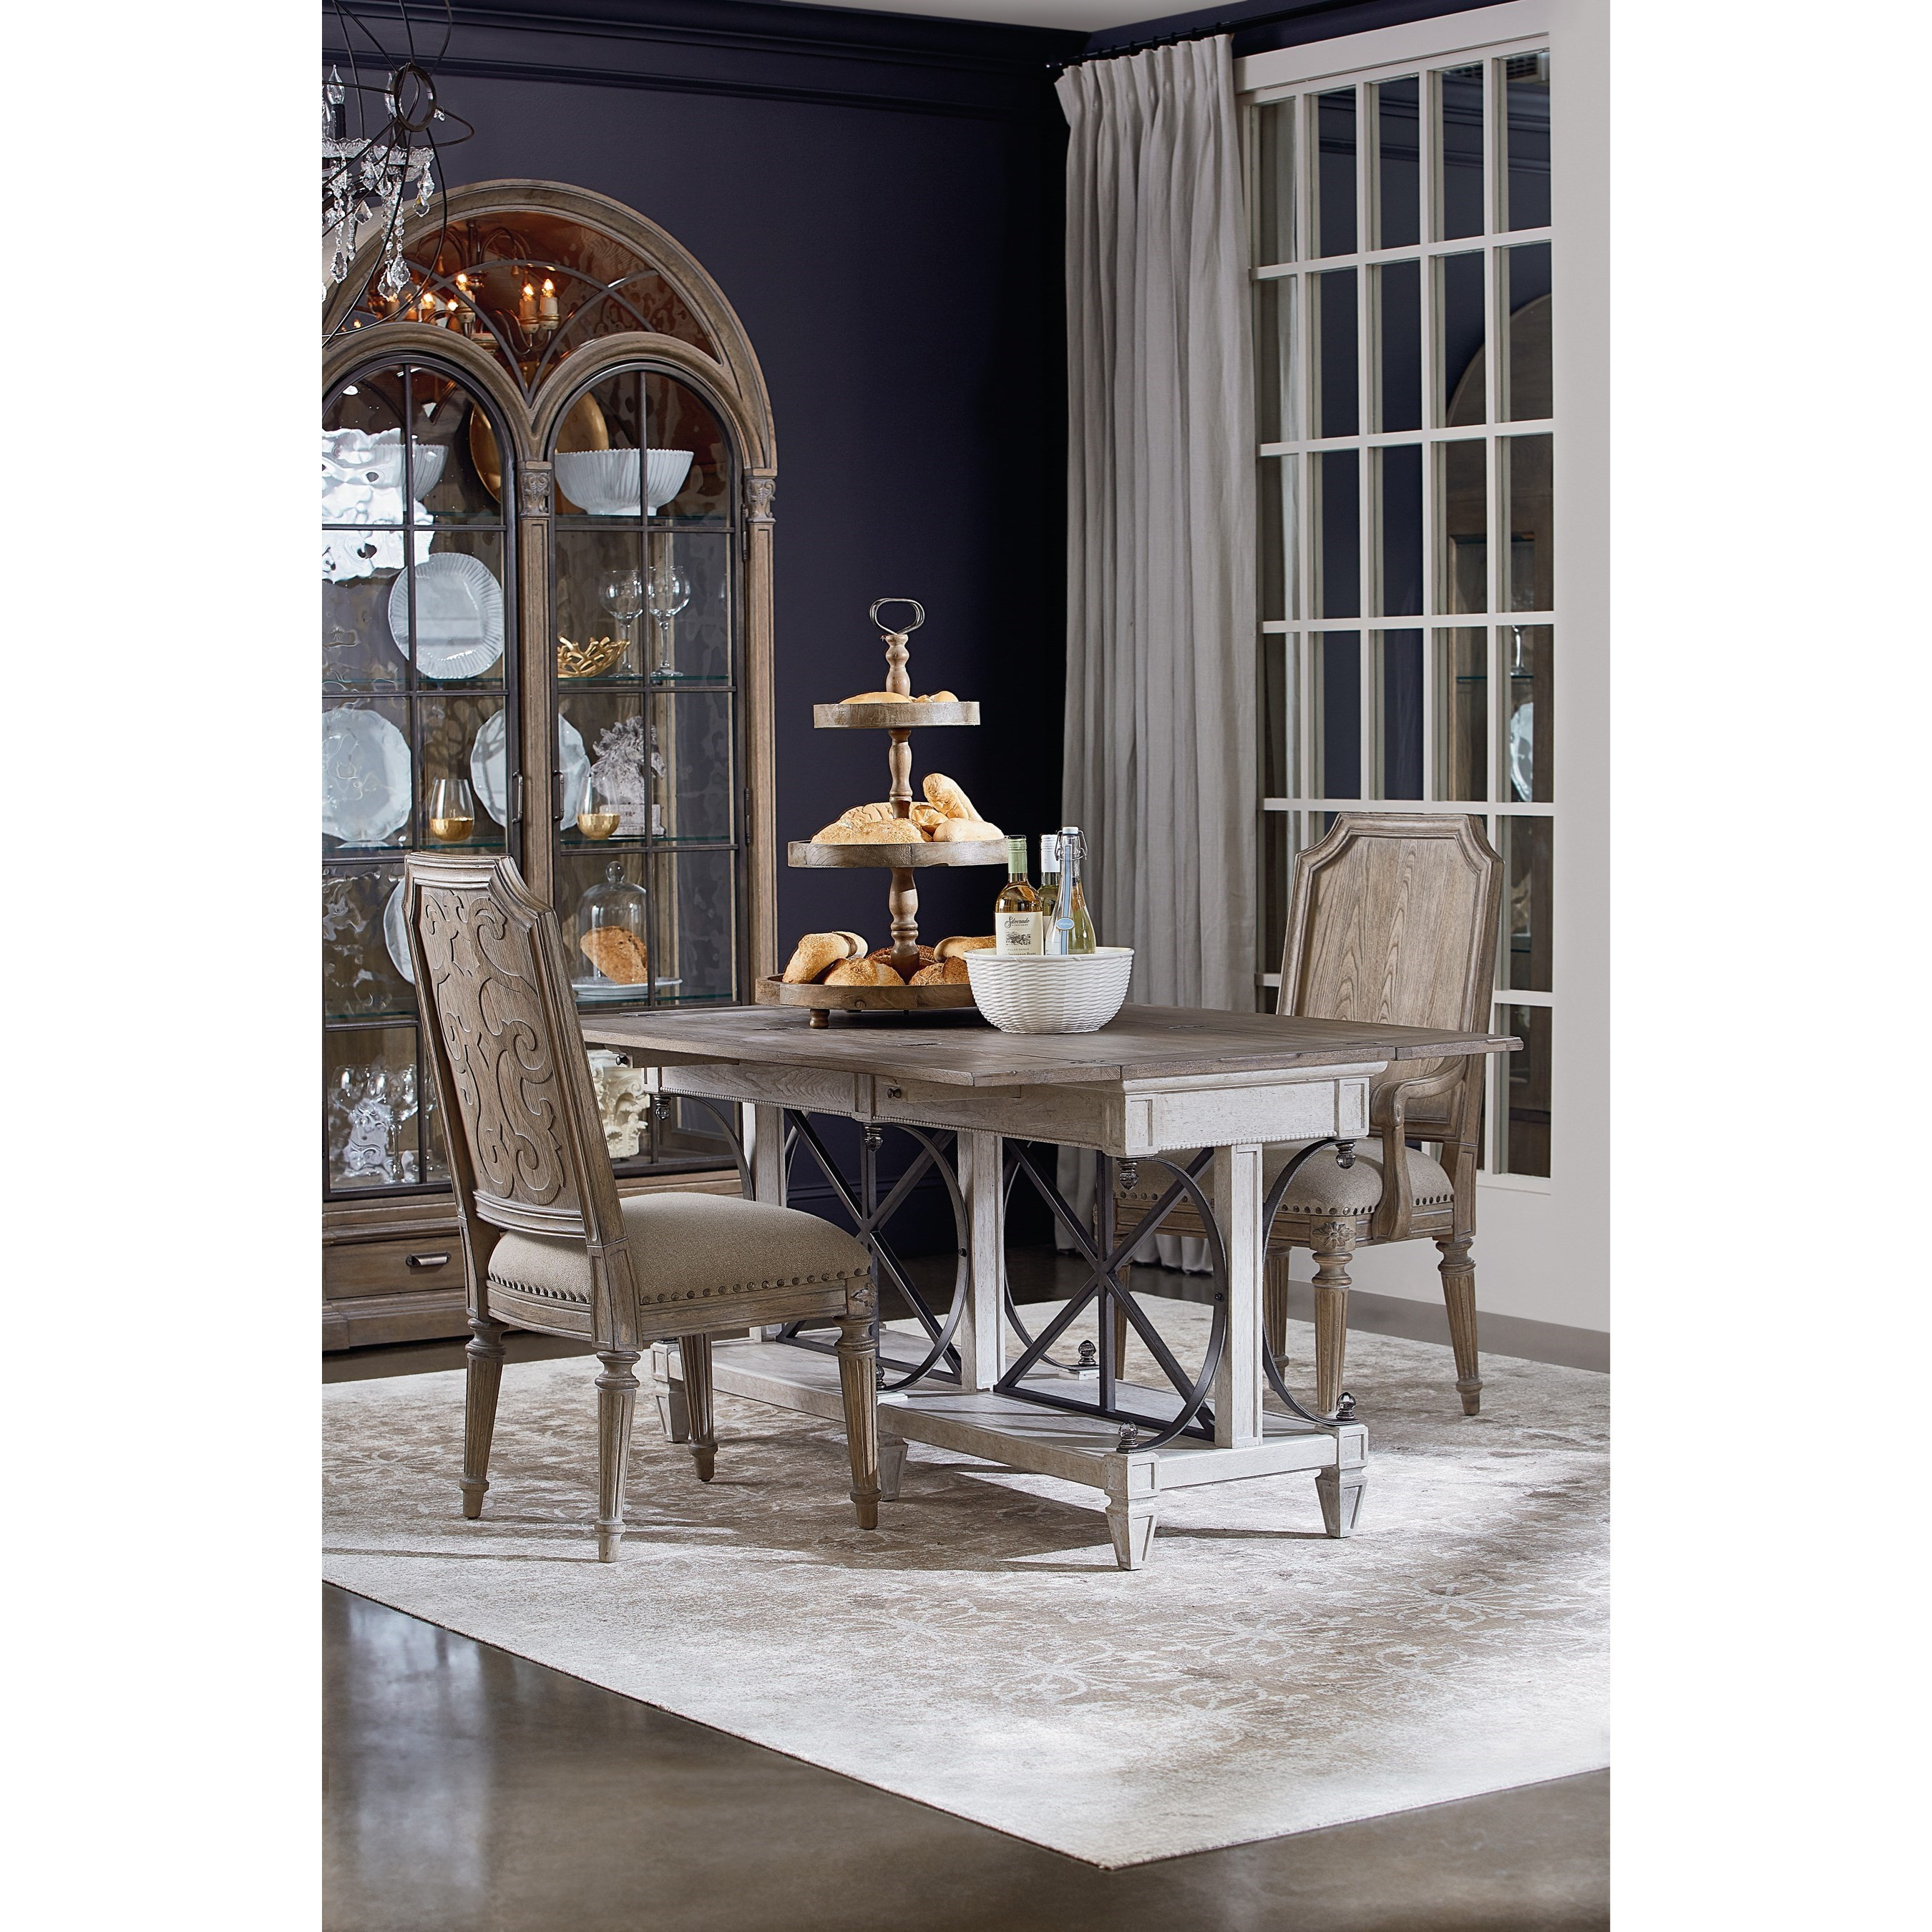 Arch Salvage Casual Dining Room Group by A.R.T. Furniture Inc at Baer's Furniture